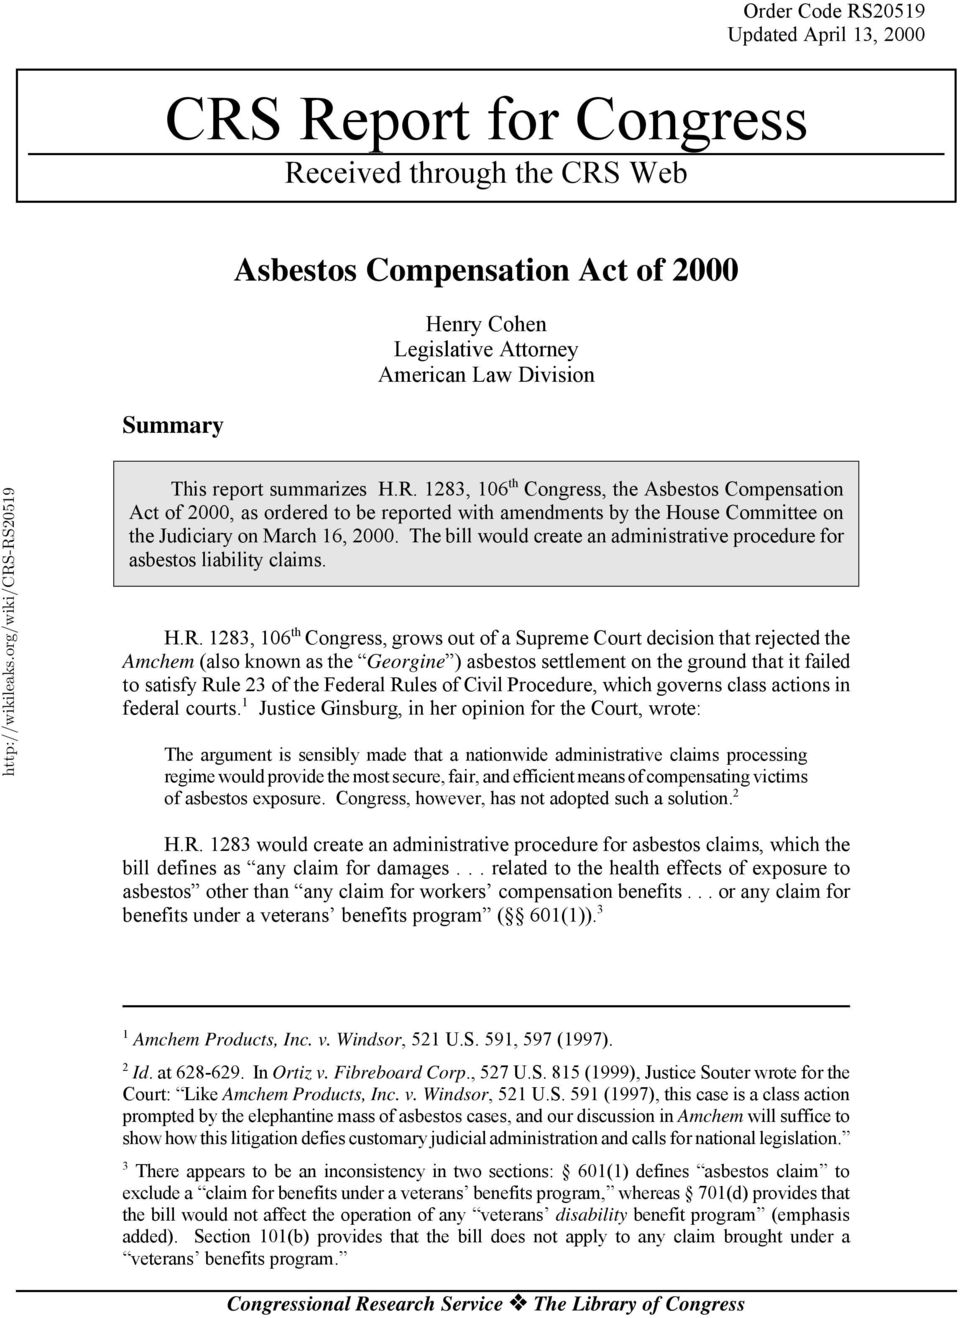 The bill would create an administrative procedure for asbestos liability claims. H.R.